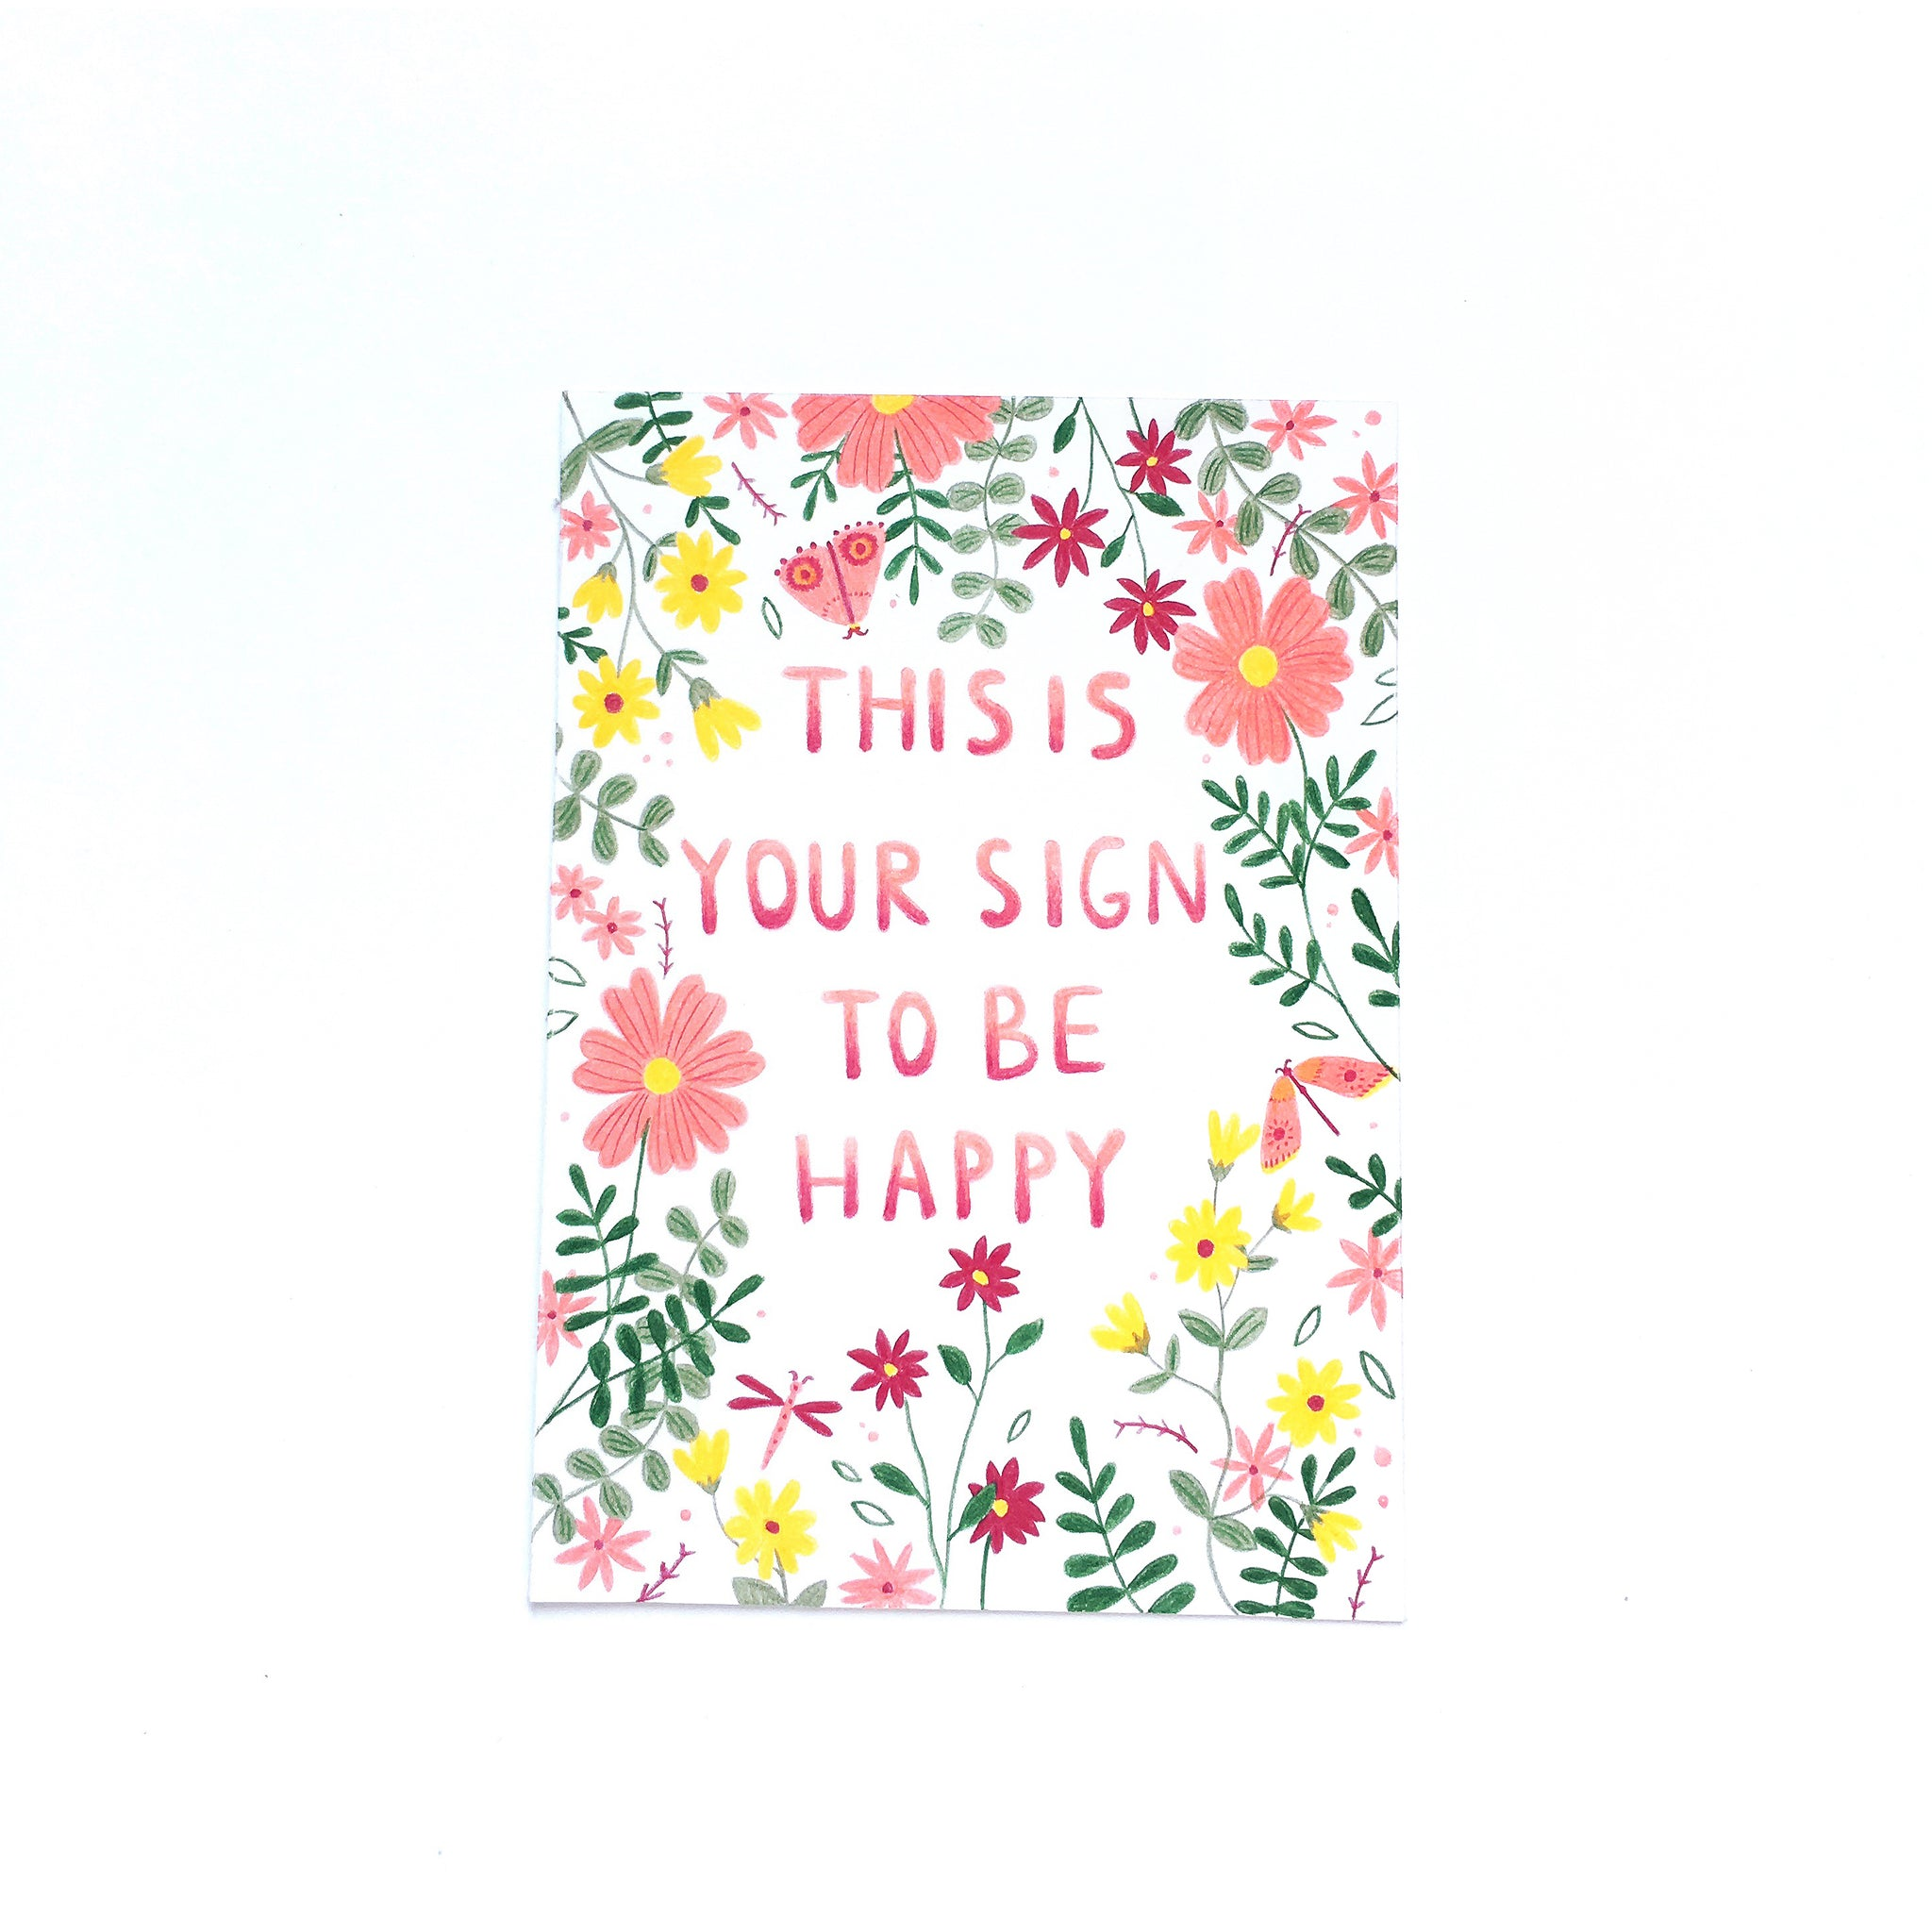 Illustrated Affirmation Card